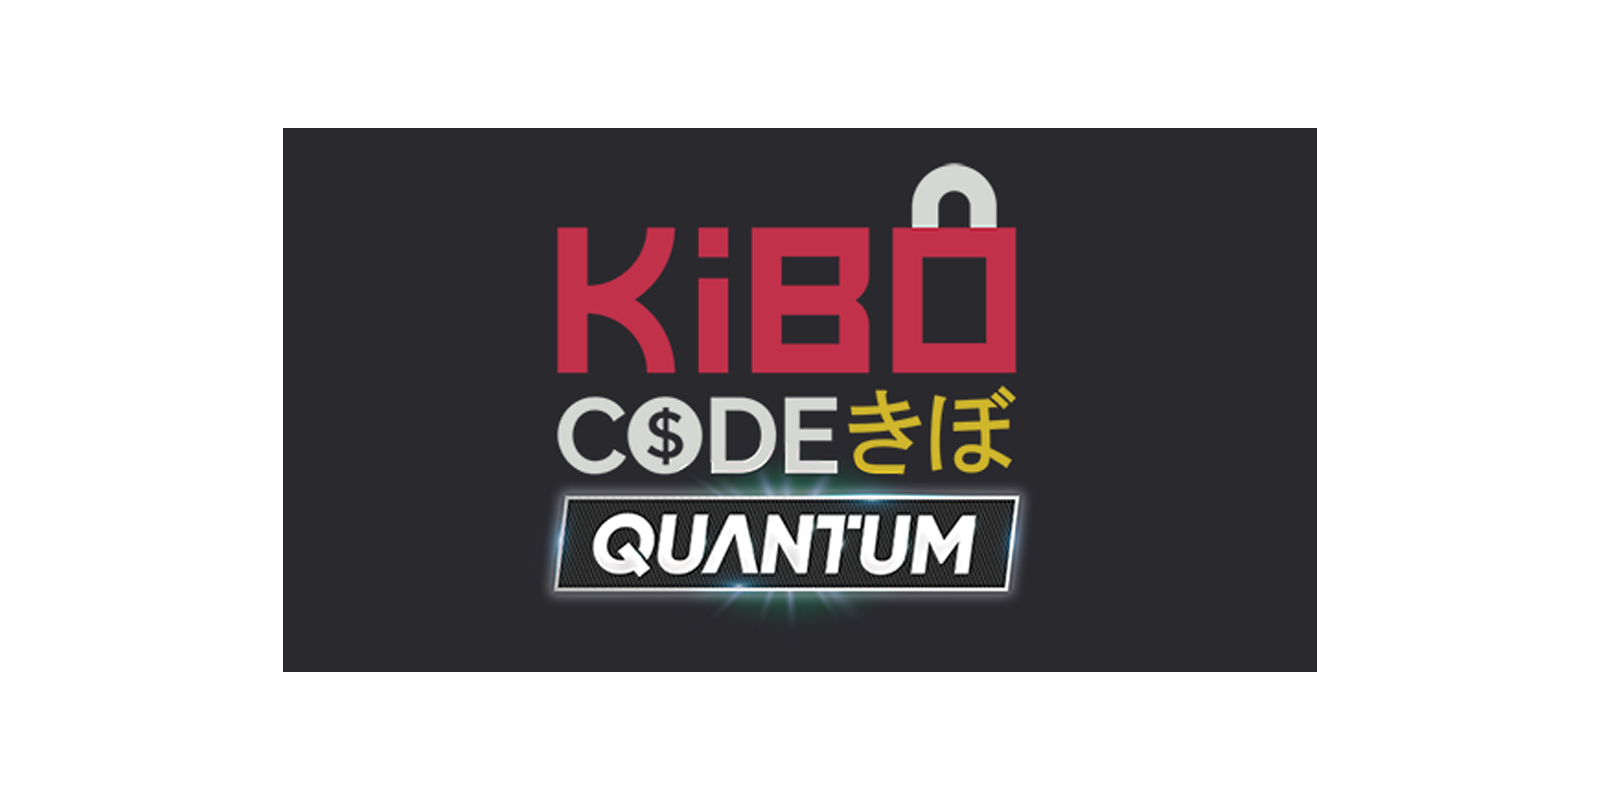 Kibo Code Quantum Reviews 2021 - Detailed Report On Steve And Aidan's eCommerce Course! Reviewed By ConsumersCompanion